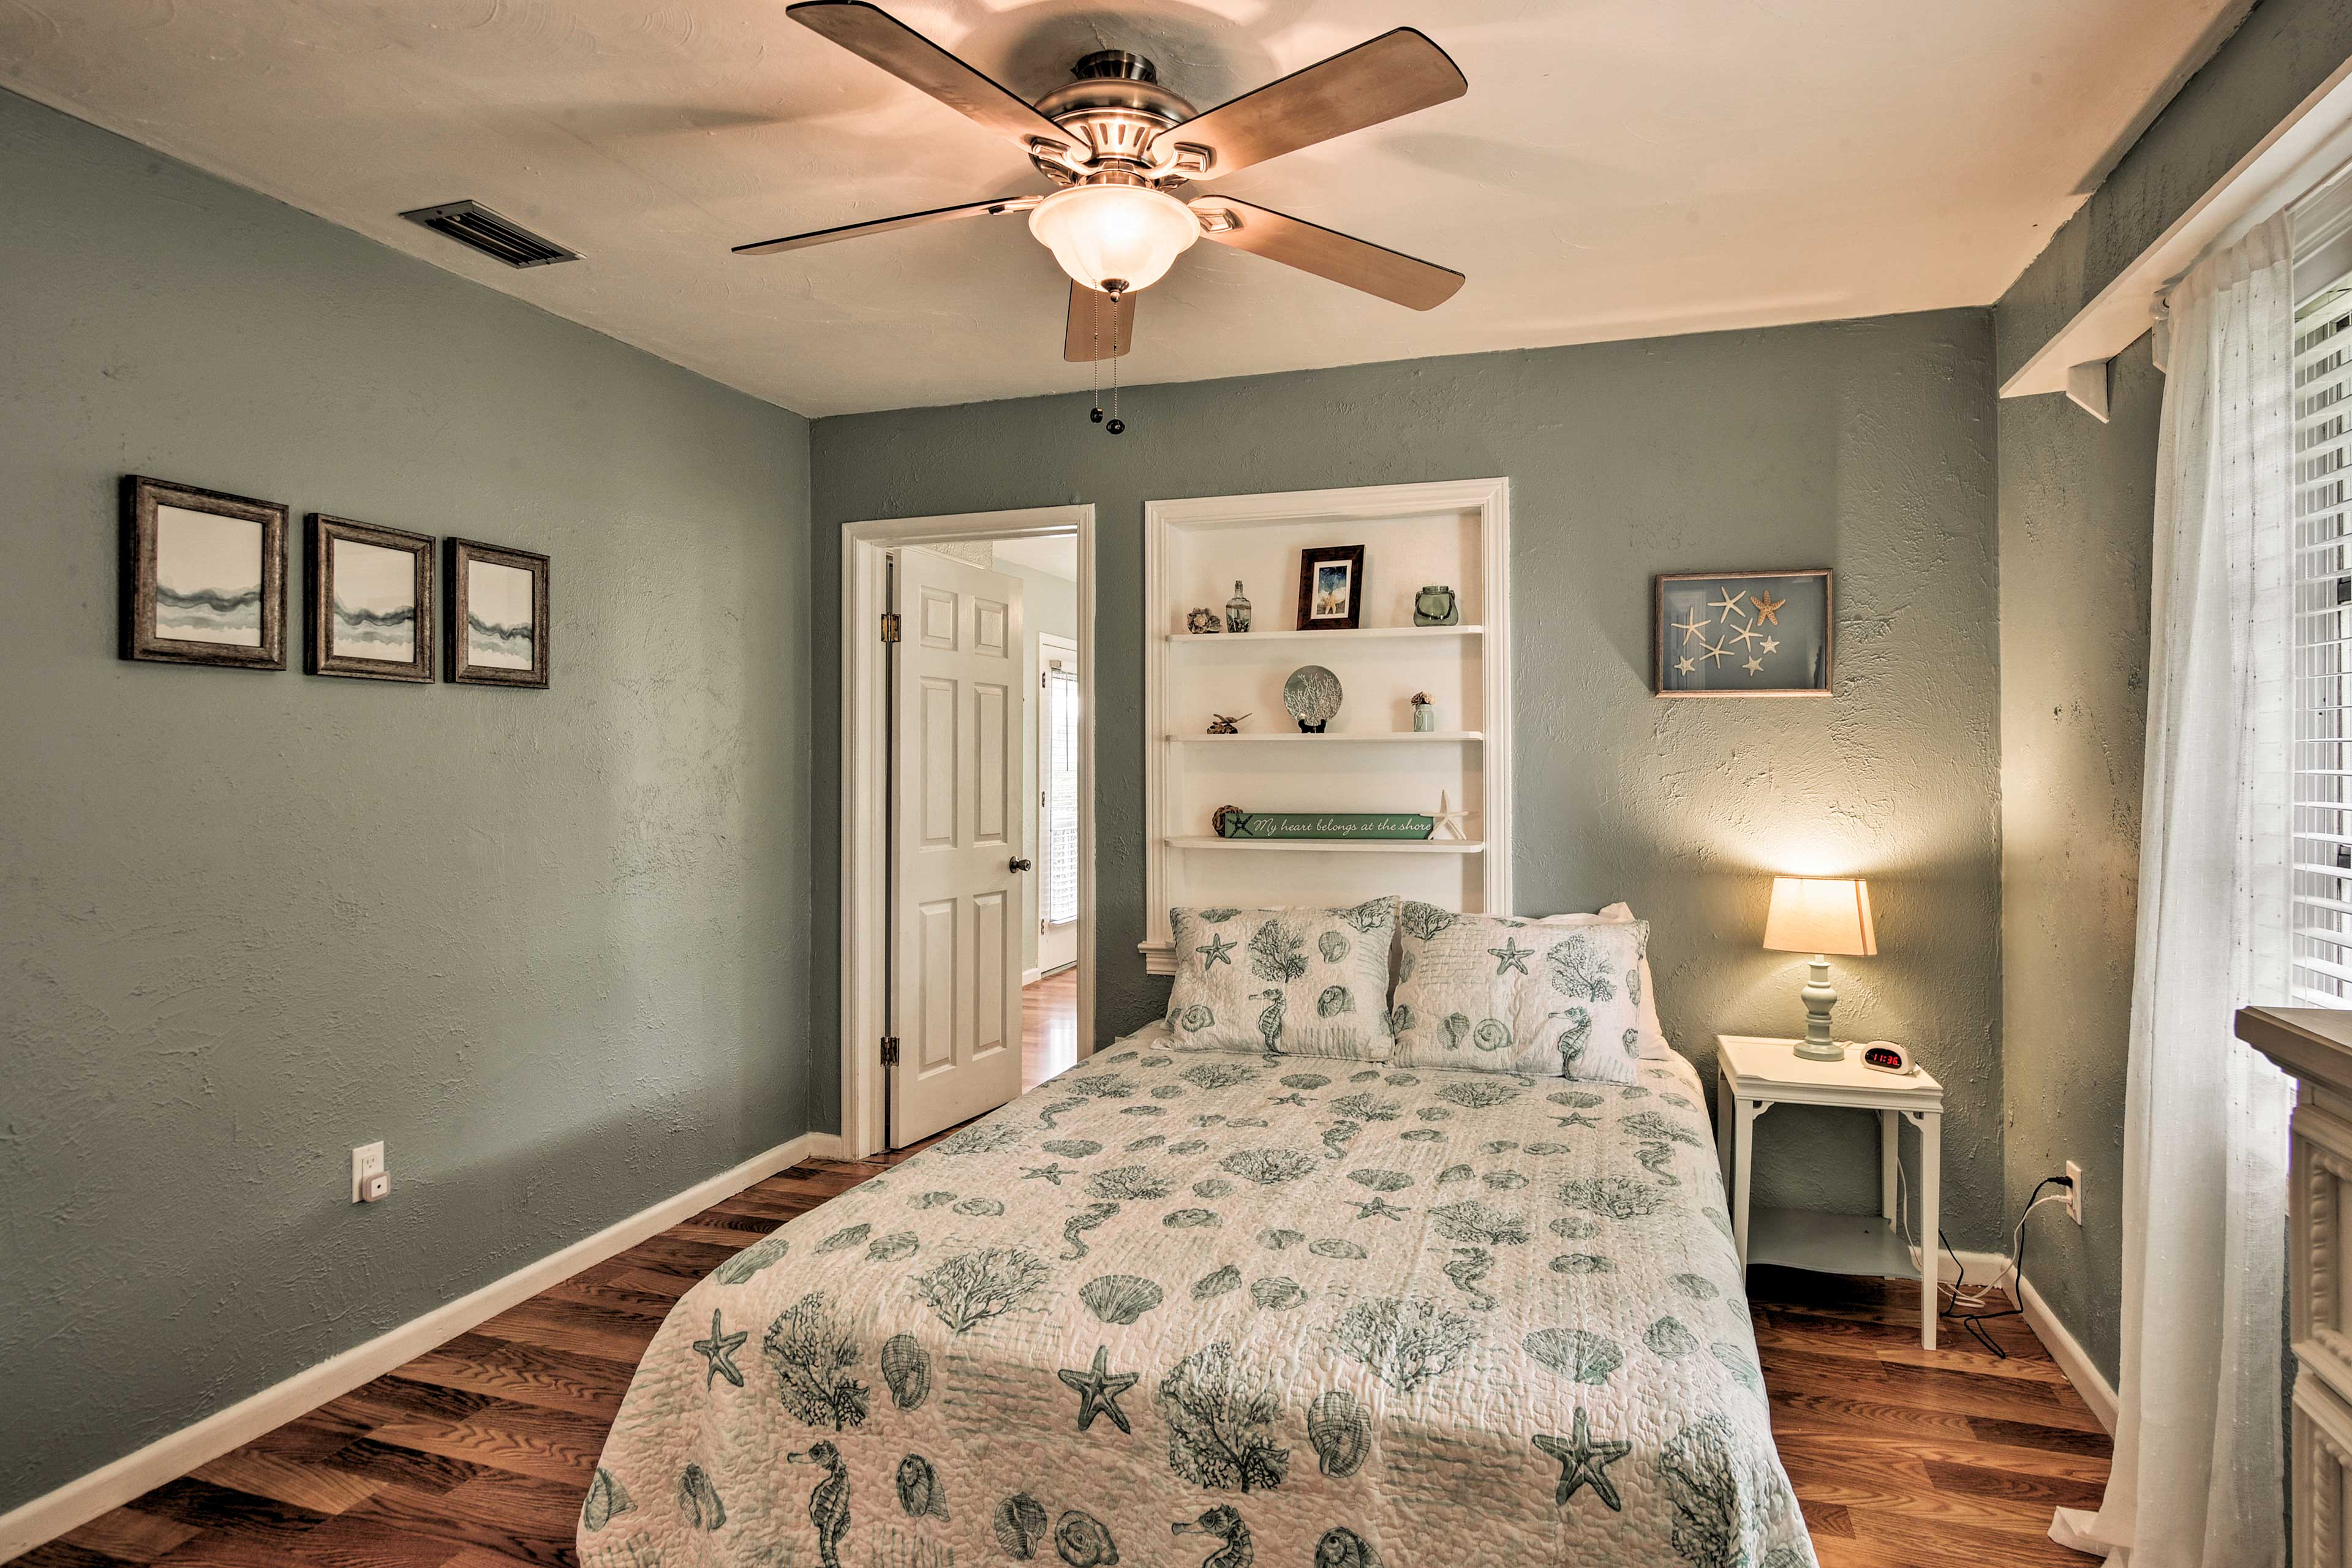 Two guests can sleep in the queen bed.